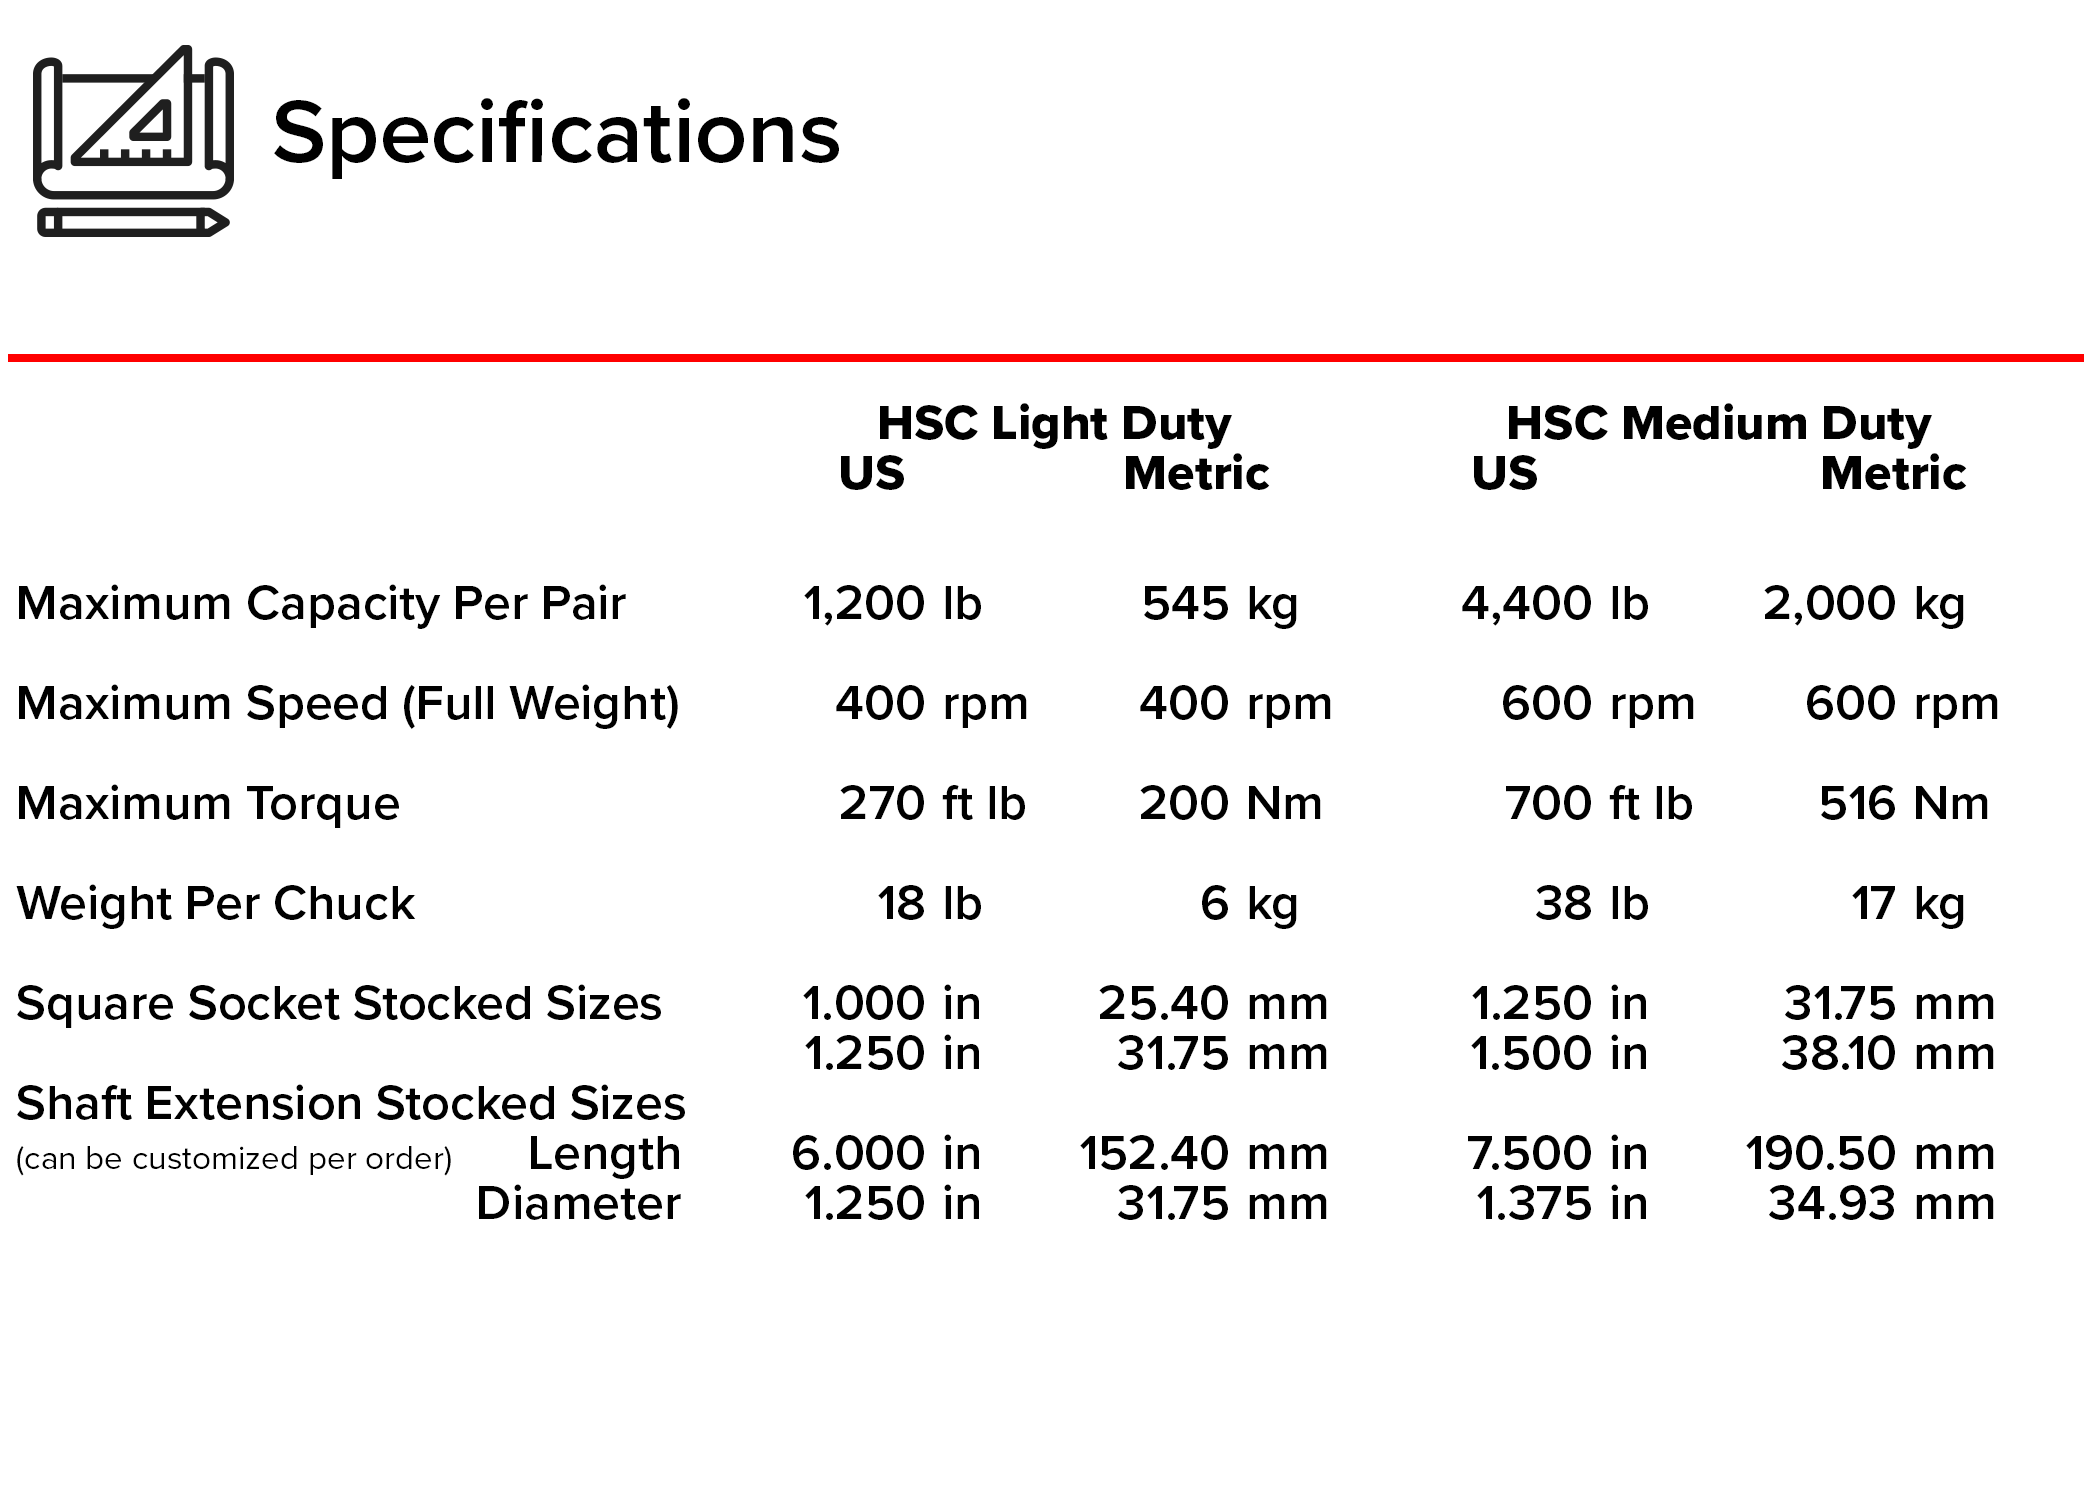 hydralign safety chuck specifications